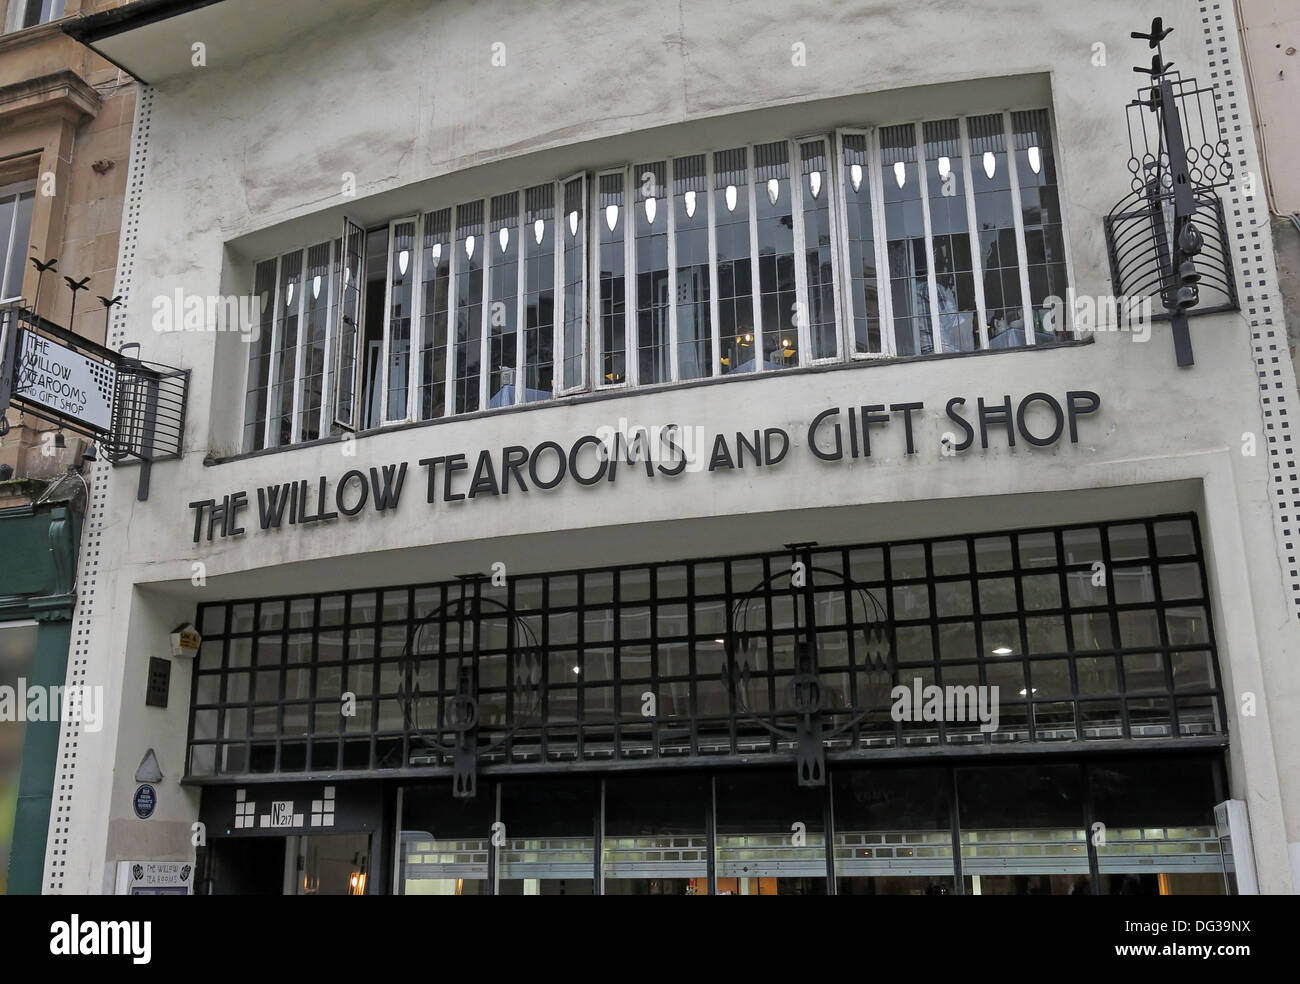 designed,by,internationally,renowned,architect,Charles,Rennie,Mackintosh,Glasgows,tearooms,cafe,Margaret,MacDonald,UK,front,exterior,smiles,better,smilesbetter,Argyle,Street,st,The,Room,Deluxe,facade,external,Scottish,tourism,tourist,destinations,independence,identity,art,style,Henderson,the,gotonysmith,Buchanan,Street,Miss,Cranston,Mackintoshs,redesigned,external,facade,was,a,carefully,considered,asymmetric,abstractly,modelled,composition,with,shallow,curves,on,some,areas,of,the,surface,and,varying,depths,of,recesses,to,windows,and,the,main,entrance.,The,composition,respected,the,urban,context,of,the,neighbouring,buildings,matching the major cornice lines and heights of adjoining buildings,whilst,still,exploring,emerging,ideas,of,Art,Nouveau,and,the,modern,movement.,The,ground,floor,entrance,door,is,placed,far,to,the,left,of,a,wide,band,of,fenestration,both of which are recessed below the first-floor level,the,location,of,the,Room,de,Luxe.,To,emphasise,the,importance,of,this,room,Mackintosh designed a full width bay window,projecting the facade outwards with a gentle curve. jewelers,Buy Pictures of,Buy Images Of